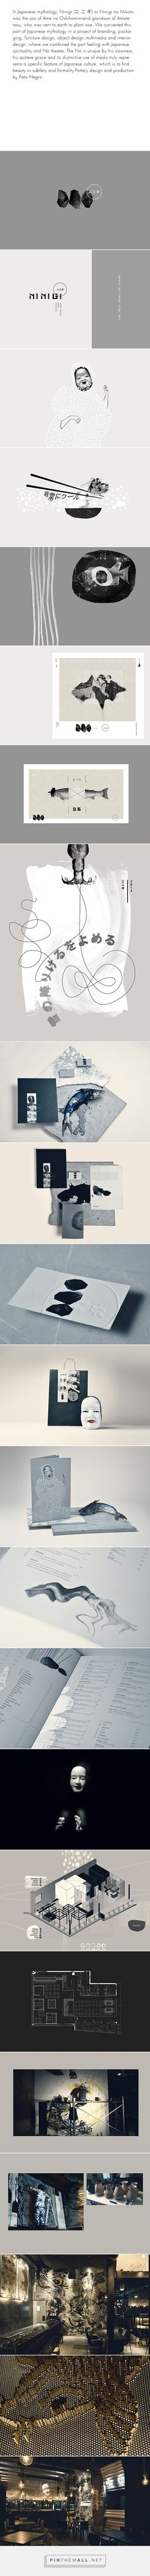 Ninigi identity packaging branding on Behance by yy curated by Packaging Diva PD This pin is long but it's worth every frame.